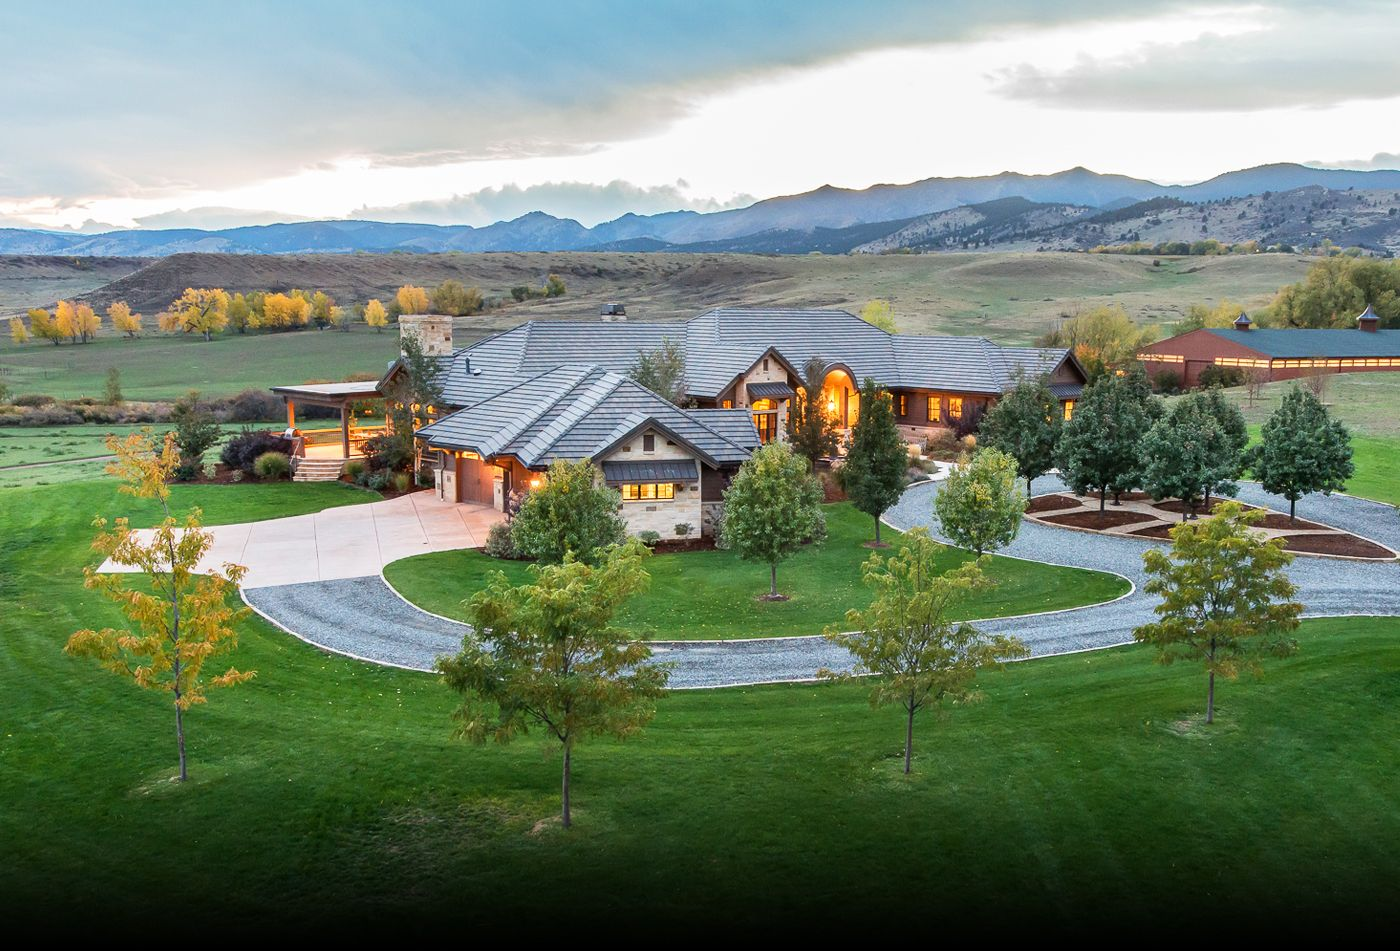 4 Rockin G Ranch Luxury Horse Property For Sale Boulder: luxury ranch texas